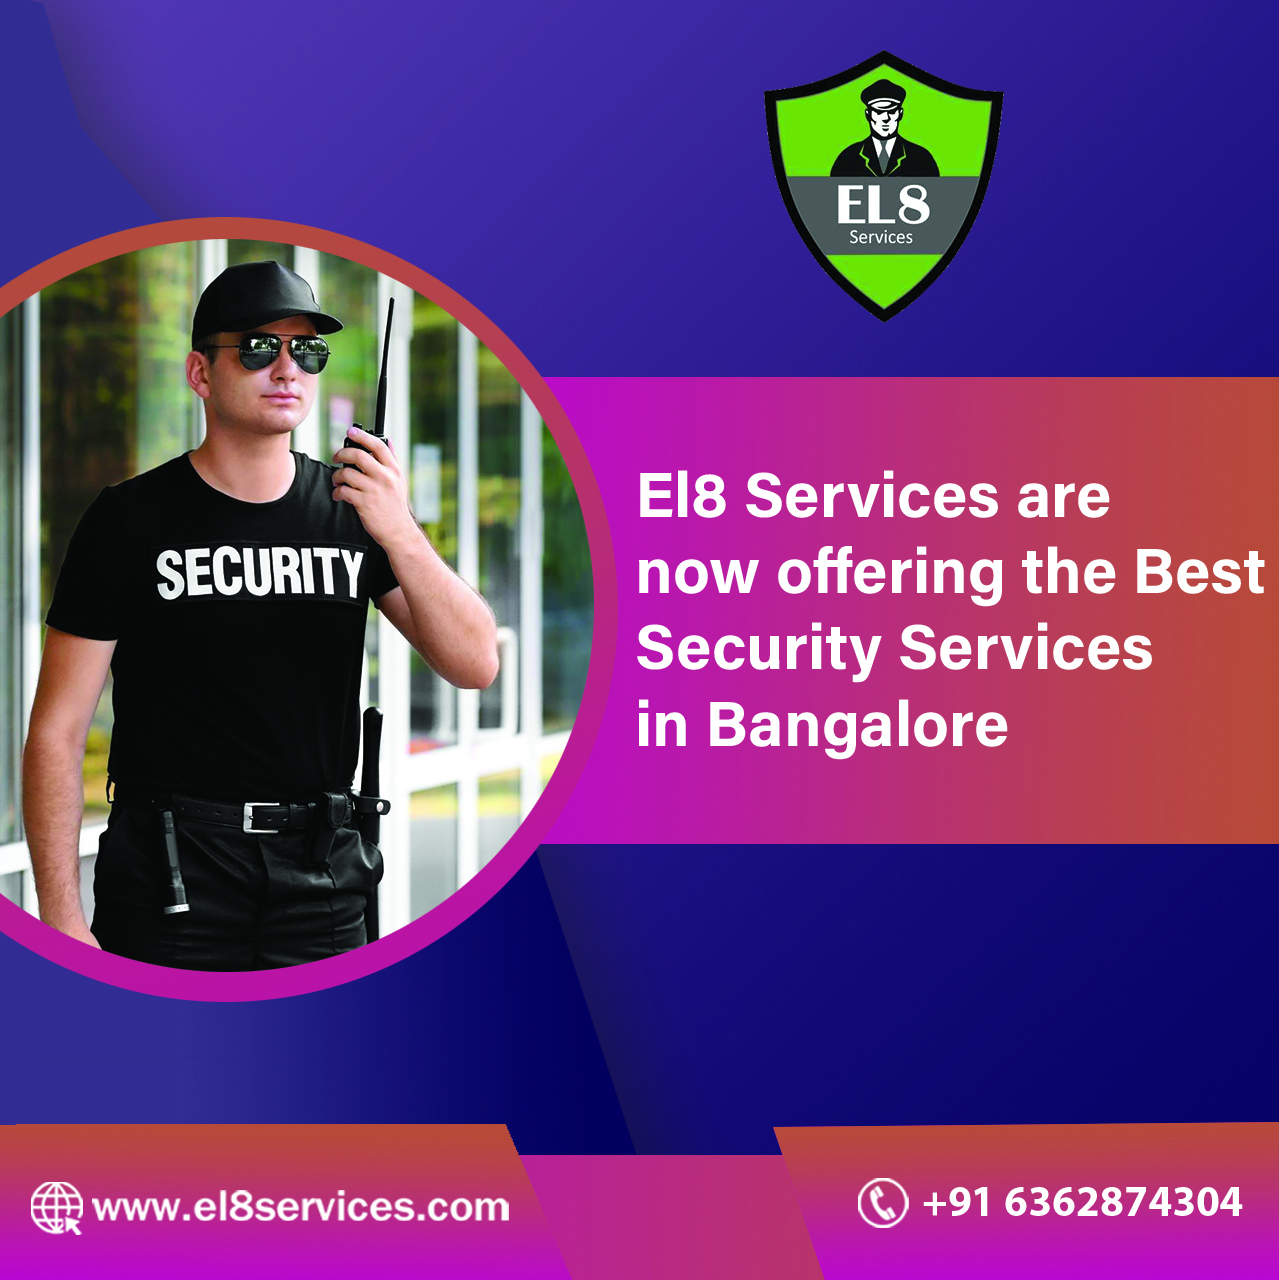 EL8 Security Guard Services Available 24x7, Dedicated Support Team,Banglore,Services,Other Services,77traders